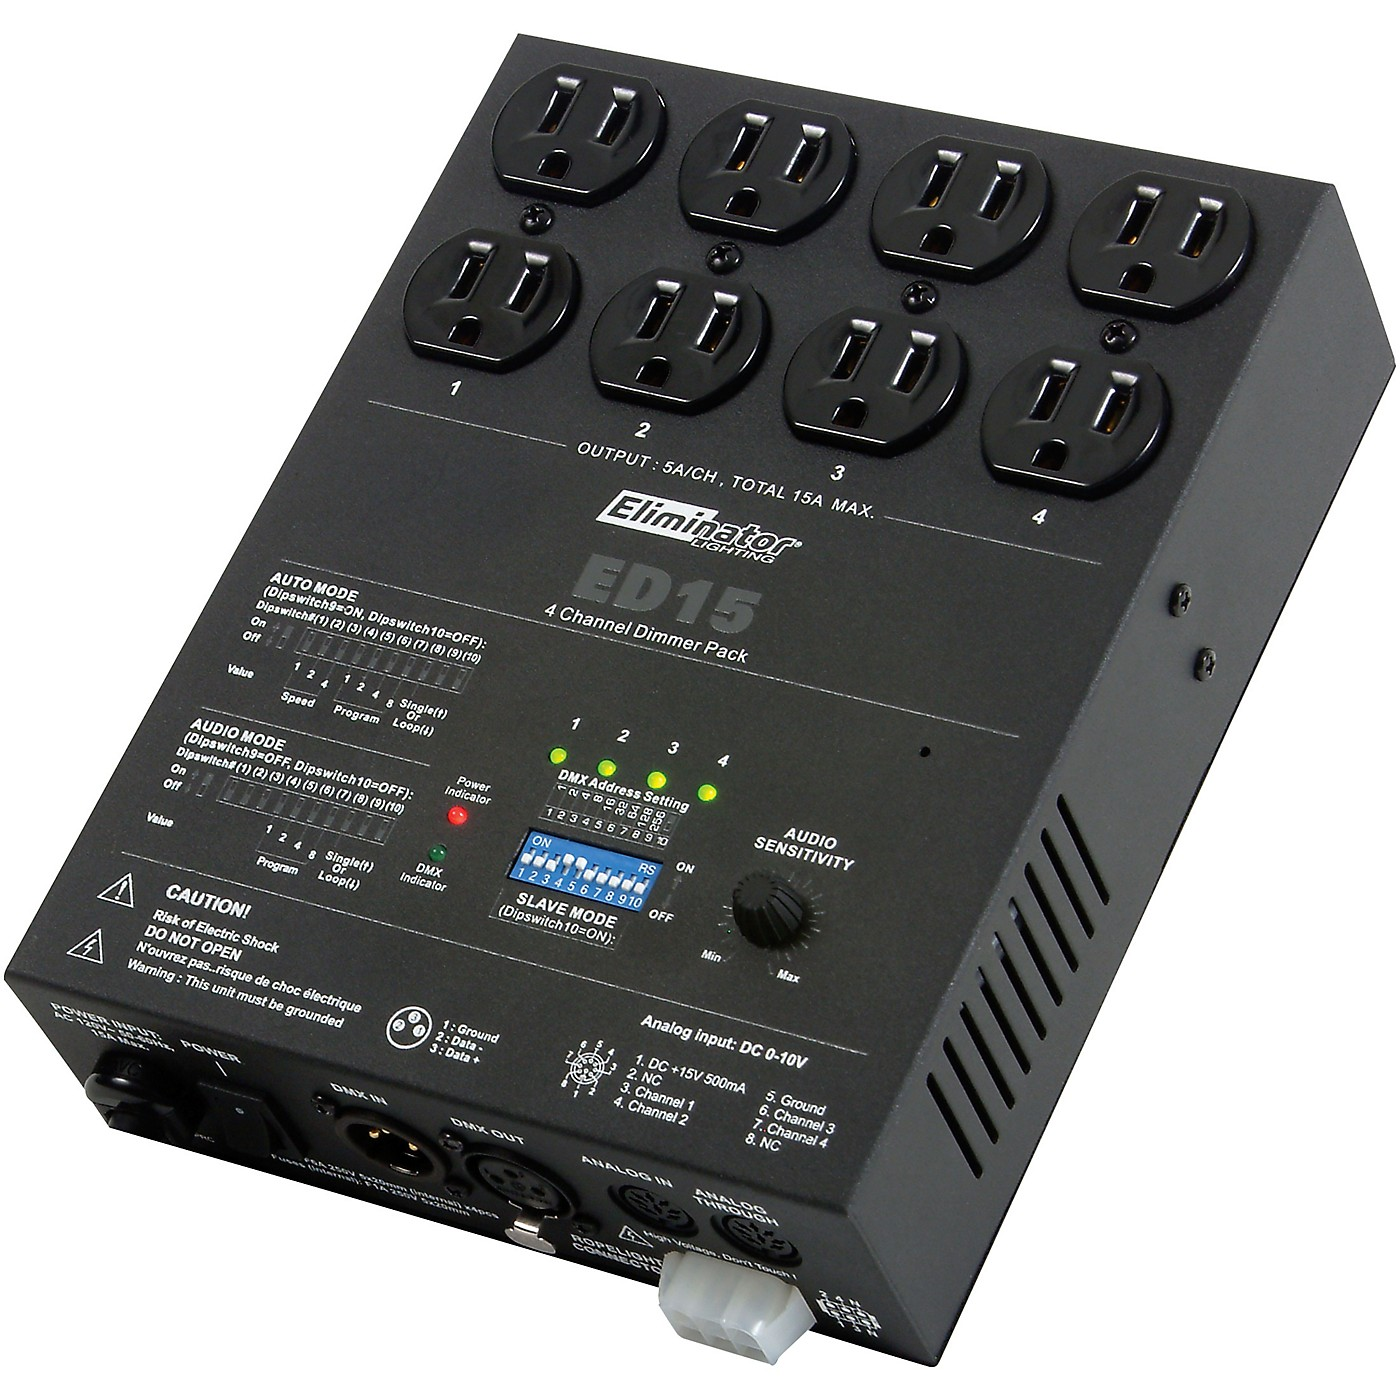 Eliminator Lighting ED-15 4-Channel DMX Lighting Dimmer Pack thumbnail